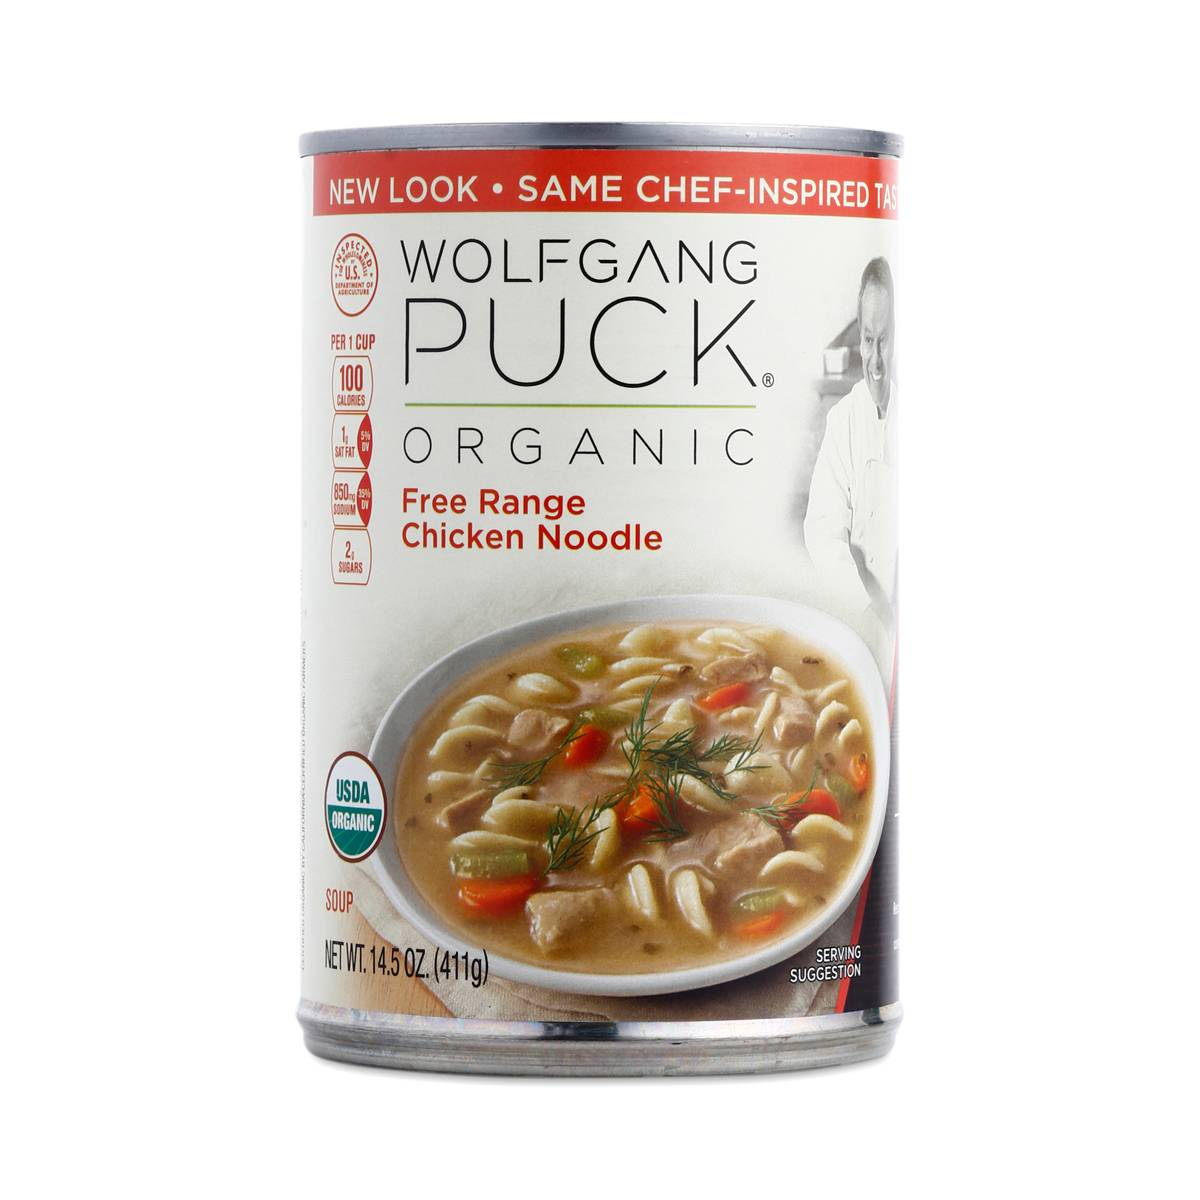 Organic Chicken Noodle Soup by Wolfgang Puck - Thrive Market